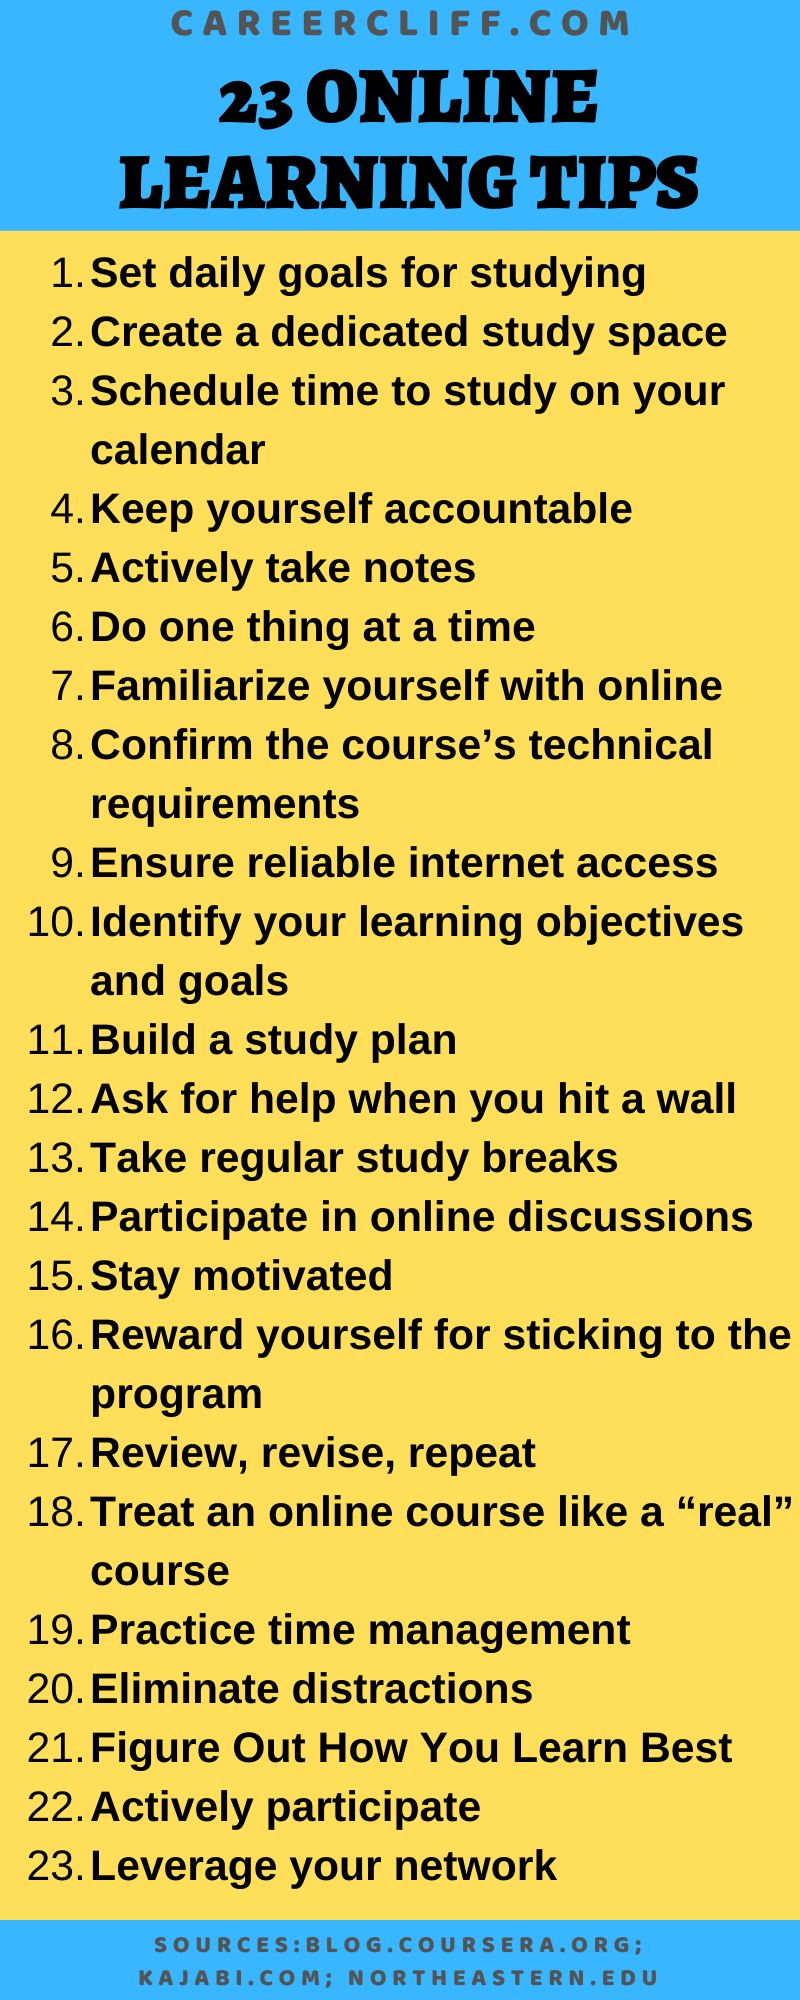 e learning tips for students e learning tips for parents elearning tips for parents elearning tips for students e learning tips for teachers online learning tips online school tips tips for taking online classes tips for online teaching online class tips online teaching tips and tricks tips for online learning success tips for online classes success tips for teaching online courses virtual learning tips for parents distance learning tips for parents tips for parents during distance learning tips for virtual learning study tips for online classes distance learning tips for teachers distance learning tips for students tips for studying online online college tips virtual teaching tips elearning tips learning tips for students online learning tips for parents online learning tips for students tips for students online learning tips for online classes for students tips for online students advice for online classes virtual learning tips for students tips for teaching math online online training tips online discussion tips for students tips for virtual teaching remote teaching tips tips for teaching hybrid courses tips for virtual learning for parents online classes tips for teachers study tips for online learning online learning tips for teachers virtual school tips tips for online college online learning tips for college students tips for success in online courses online classes tips for students best way to study online student tips for online learning tips class online online class tricks online school tips for students online teaching tips for teachers tips for online learning for elementary students online learning tips for high school students tips for remote teaching time management tips for online students tips for effective online learning ways to study online tips for virtual school online school tips and tricks online teaching tips for educators online school organization tips tips for taking online exams success strategies for online learning advice for online 